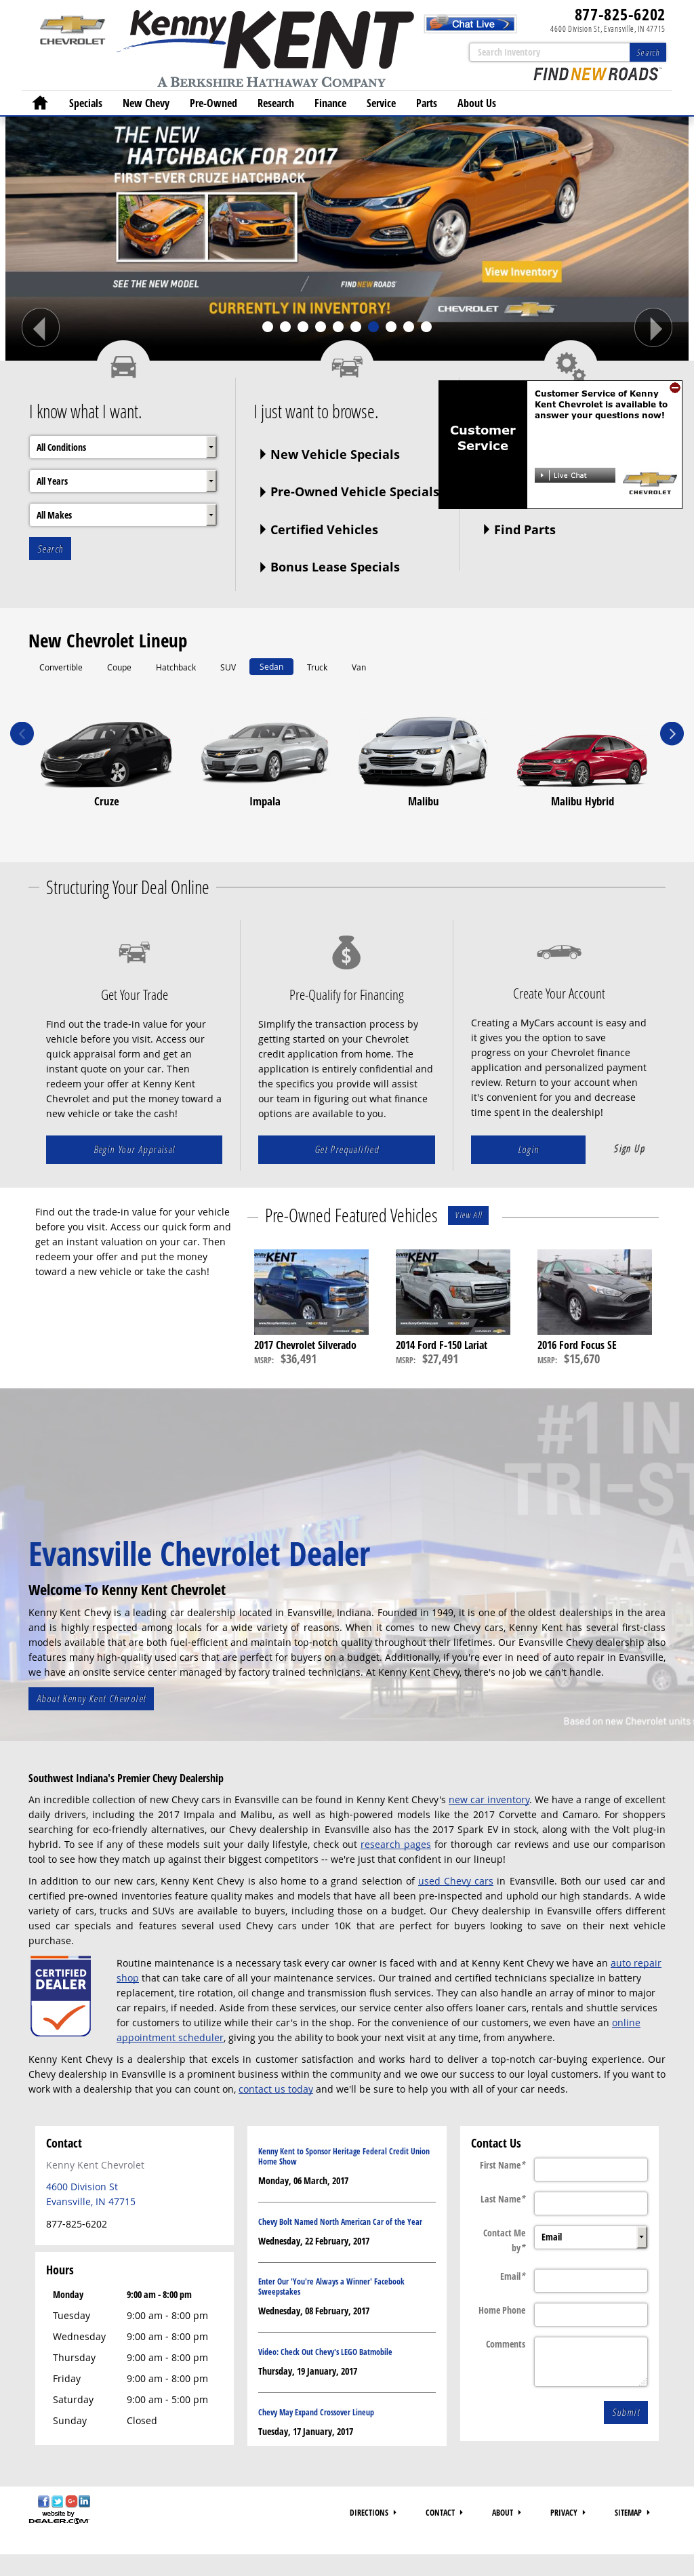 Kenny Kent Chevrolet >> Kenny Kent Chevrolet Competitors Revenue And Employees